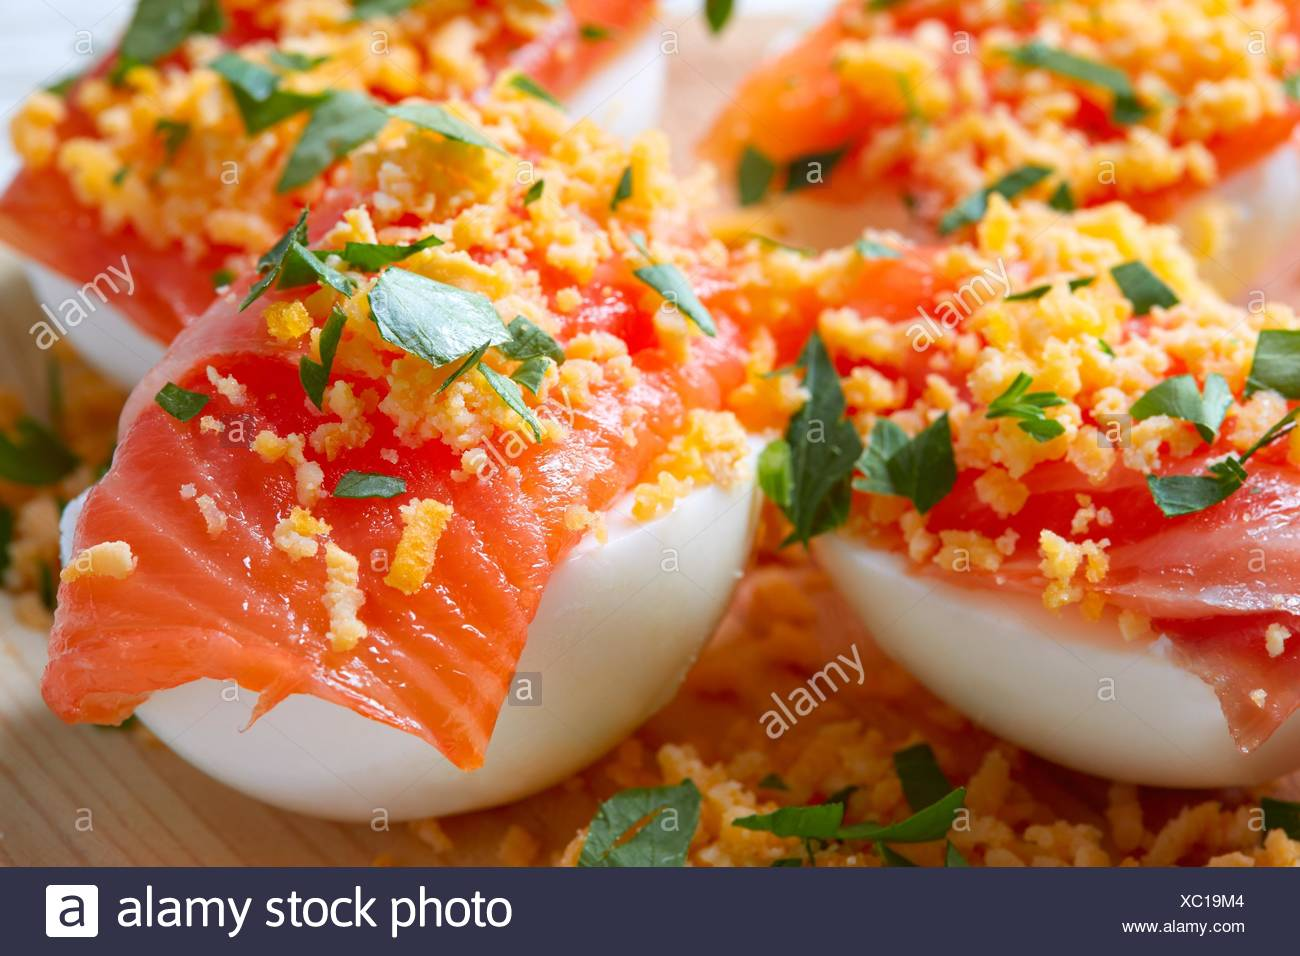 Filled eggs with salmon pinchos tapas from Spain recipes pintxos. - Stock Image